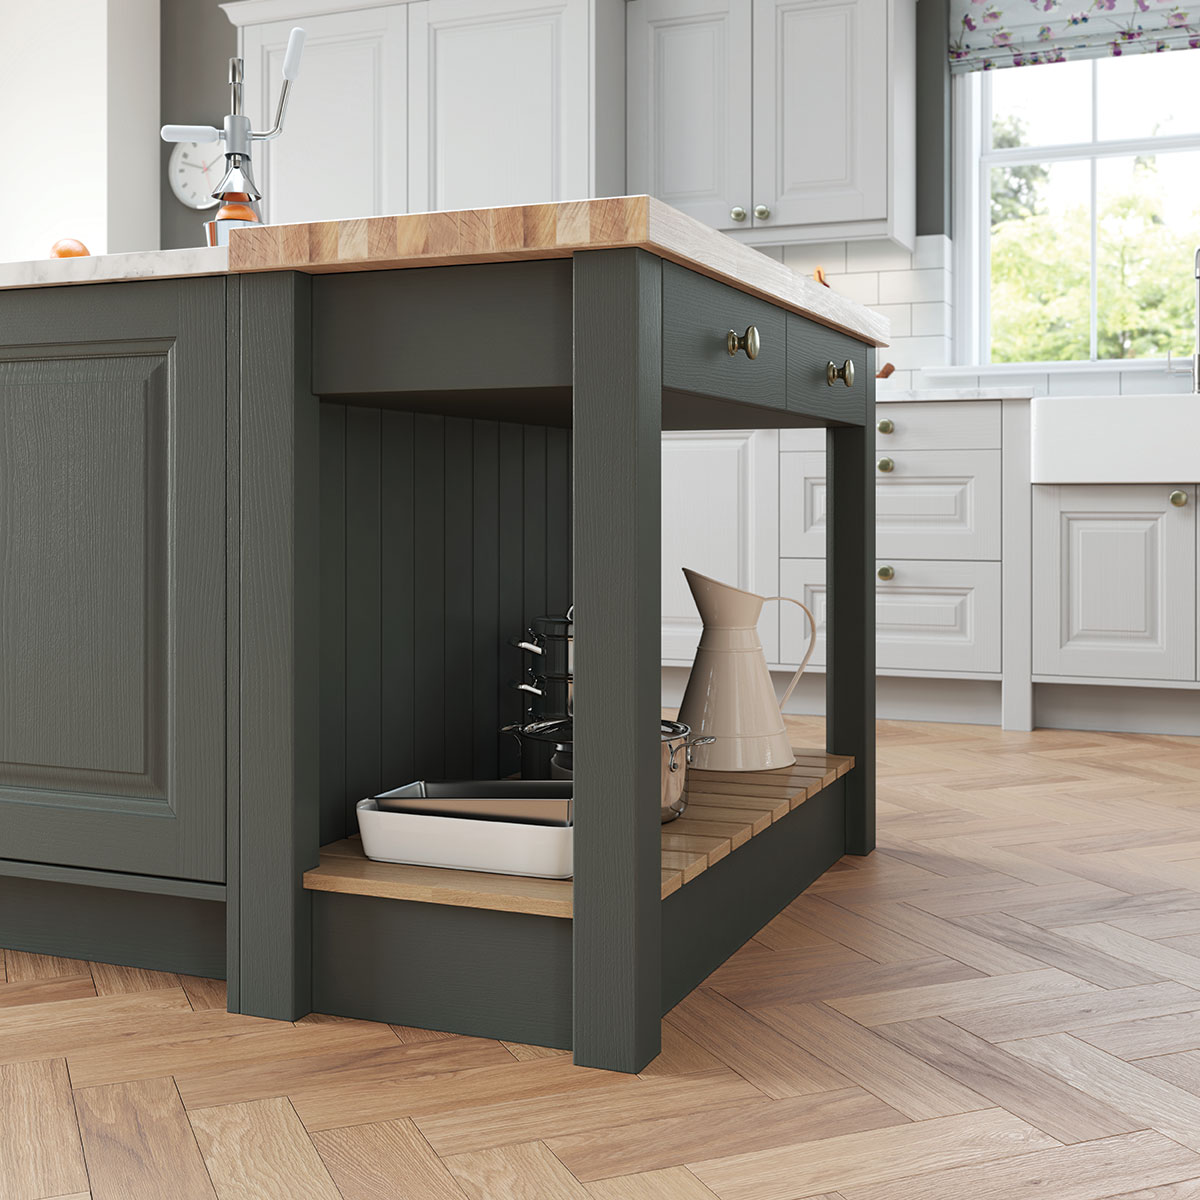 kitchen_stori_jefferson_painted_gun_metal_grey-and_light_grey_island_bench_CMYK.jpg